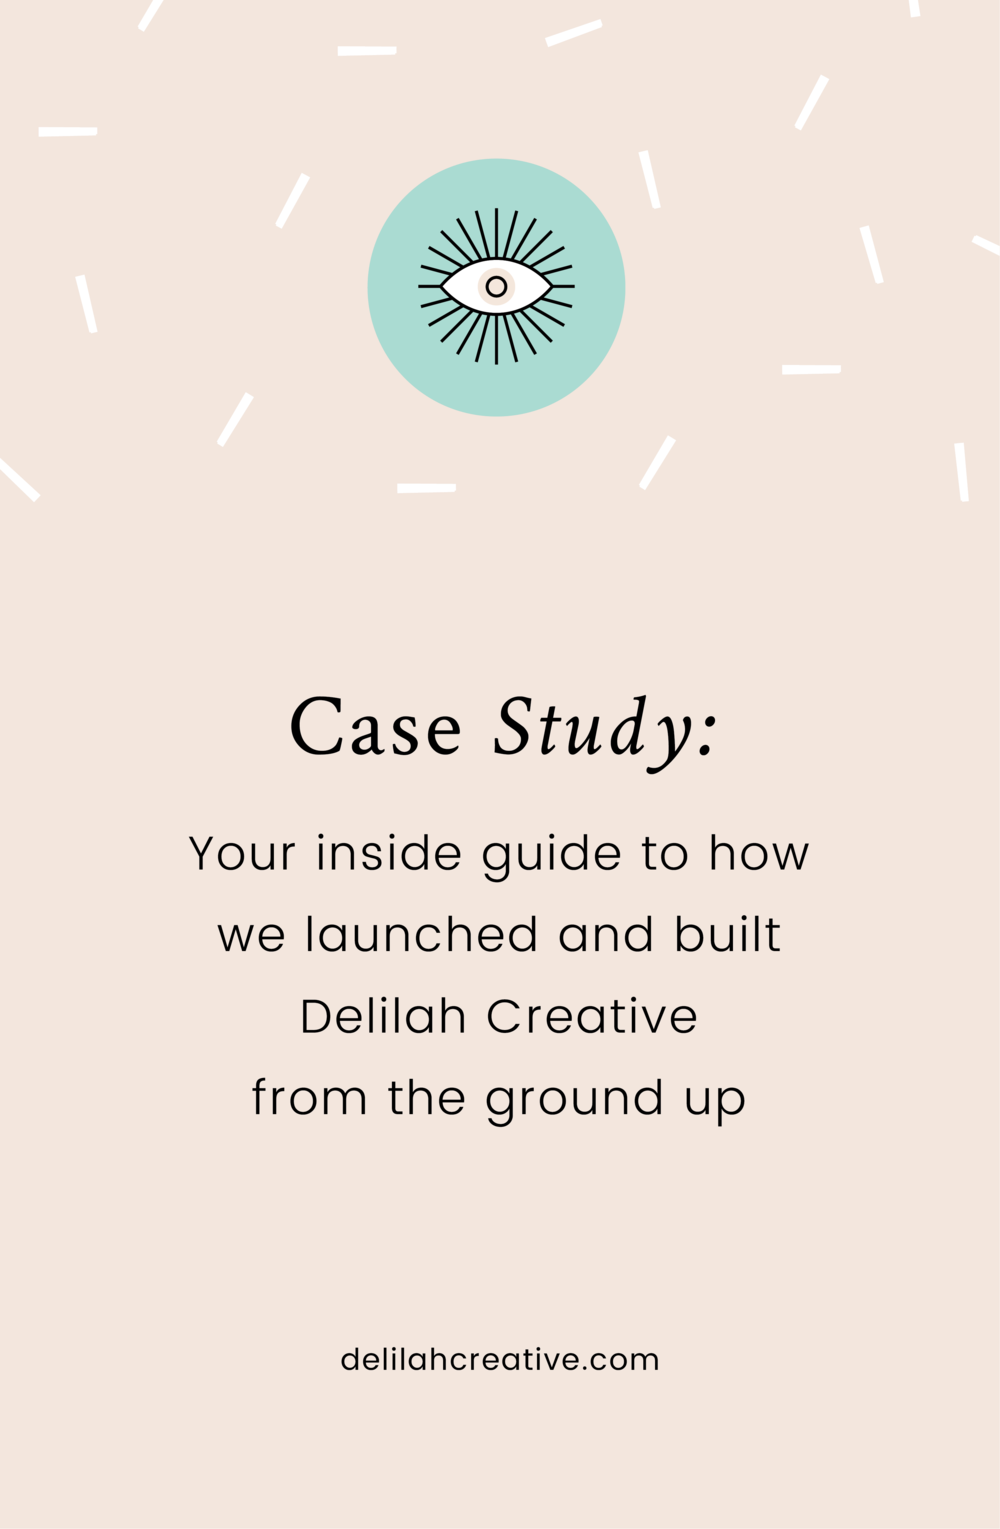 case study your inside guide to how we launched and build delilah creative